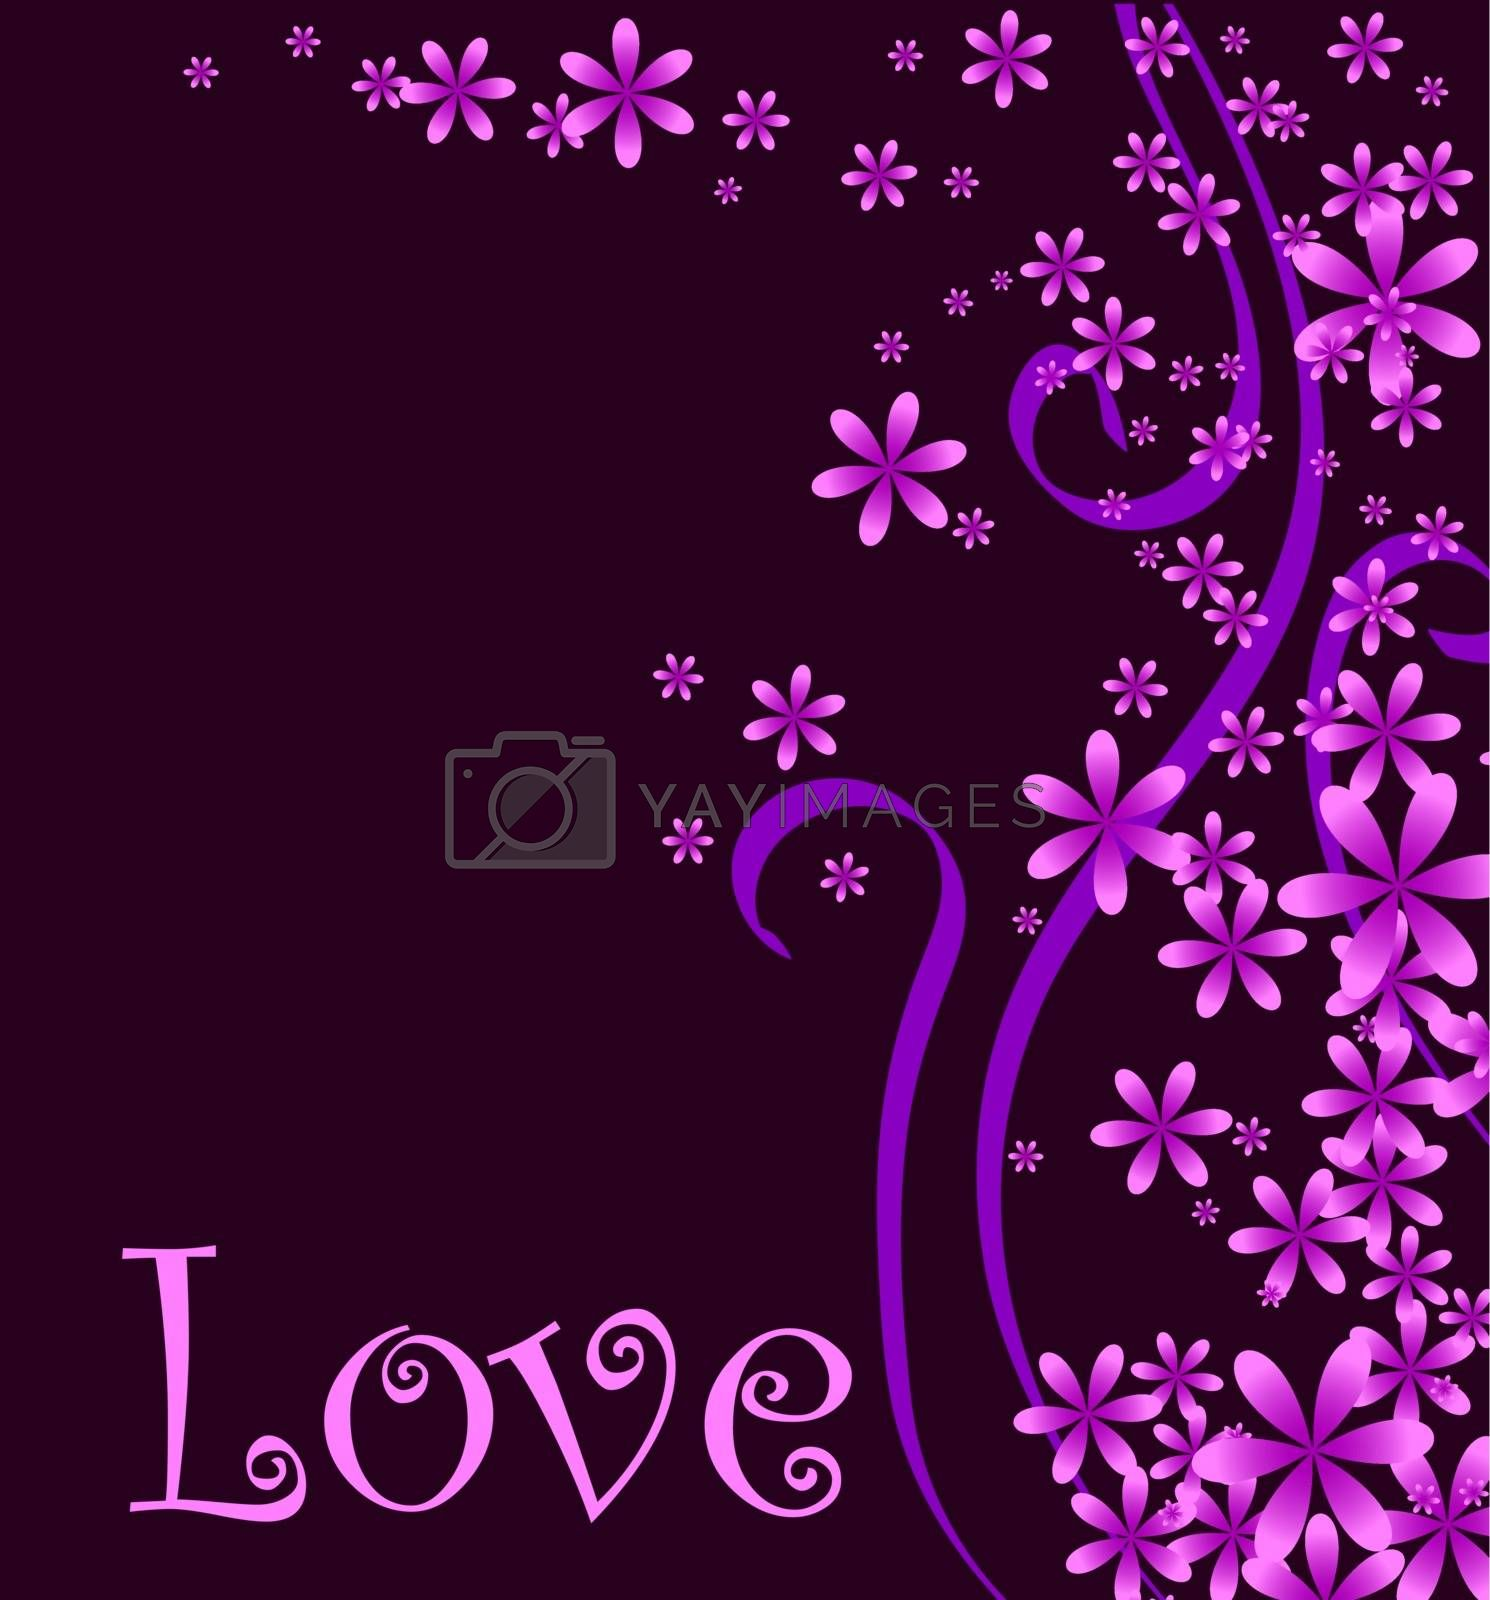 Vector illustration of a love or Valentines background.